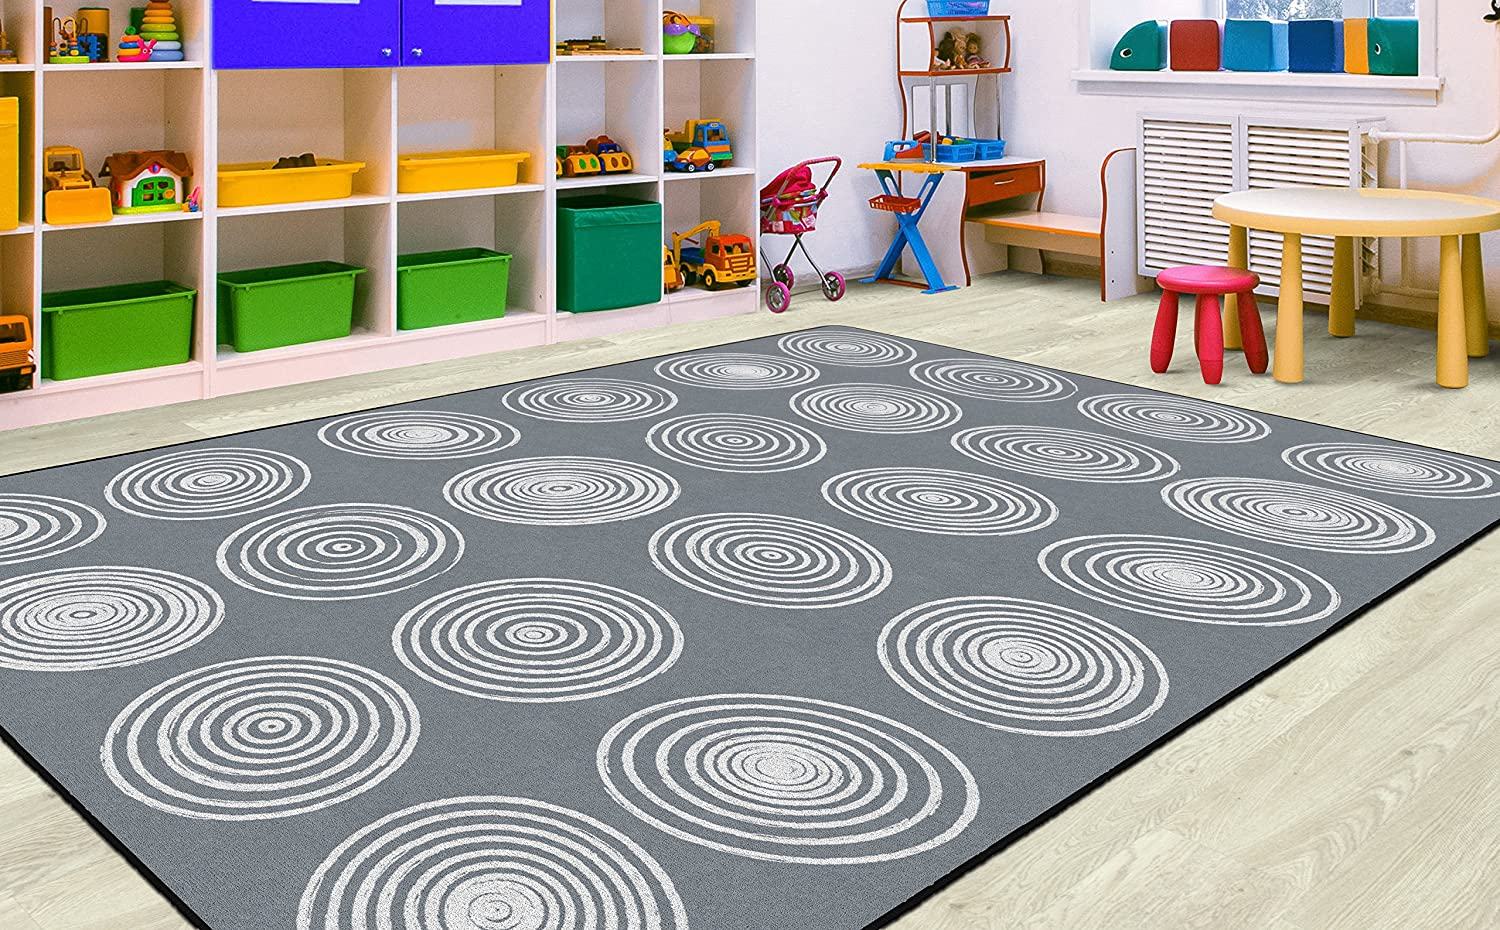 1. Circles Abstract Children's Classroom Area Rug